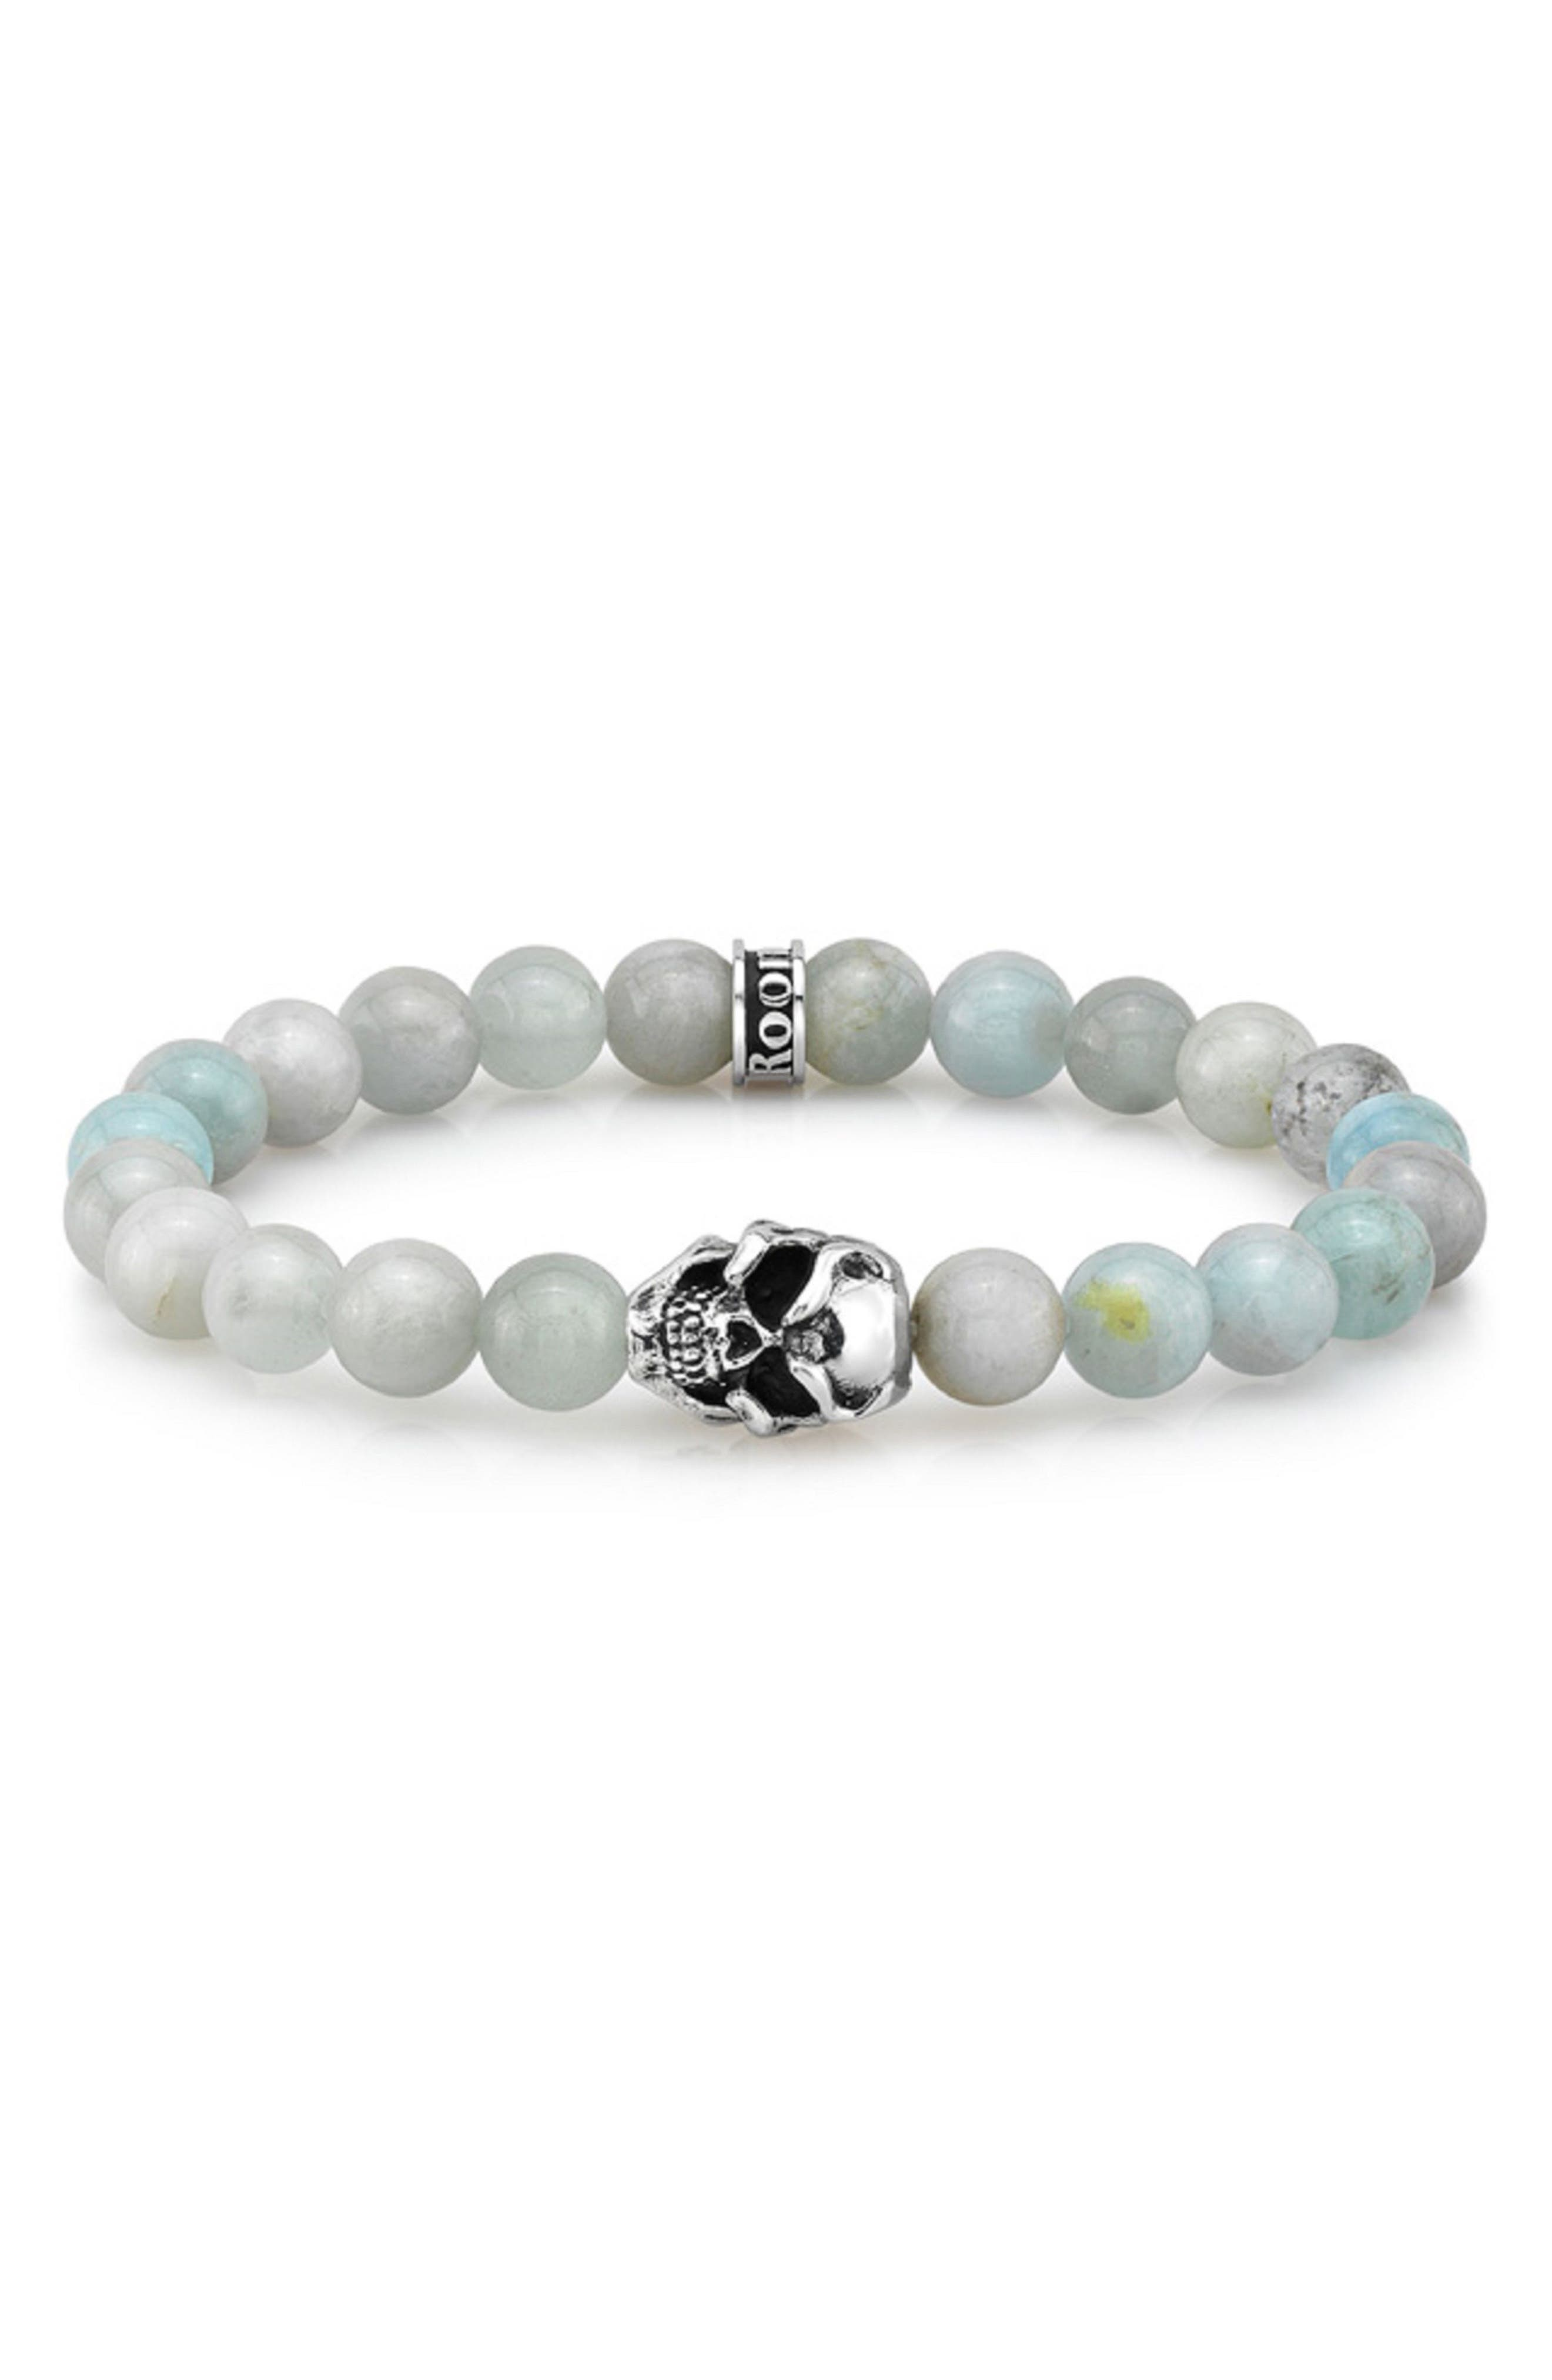 Alternate Image 1 Selected - Room 101 Aquamarine Bead Bracelet